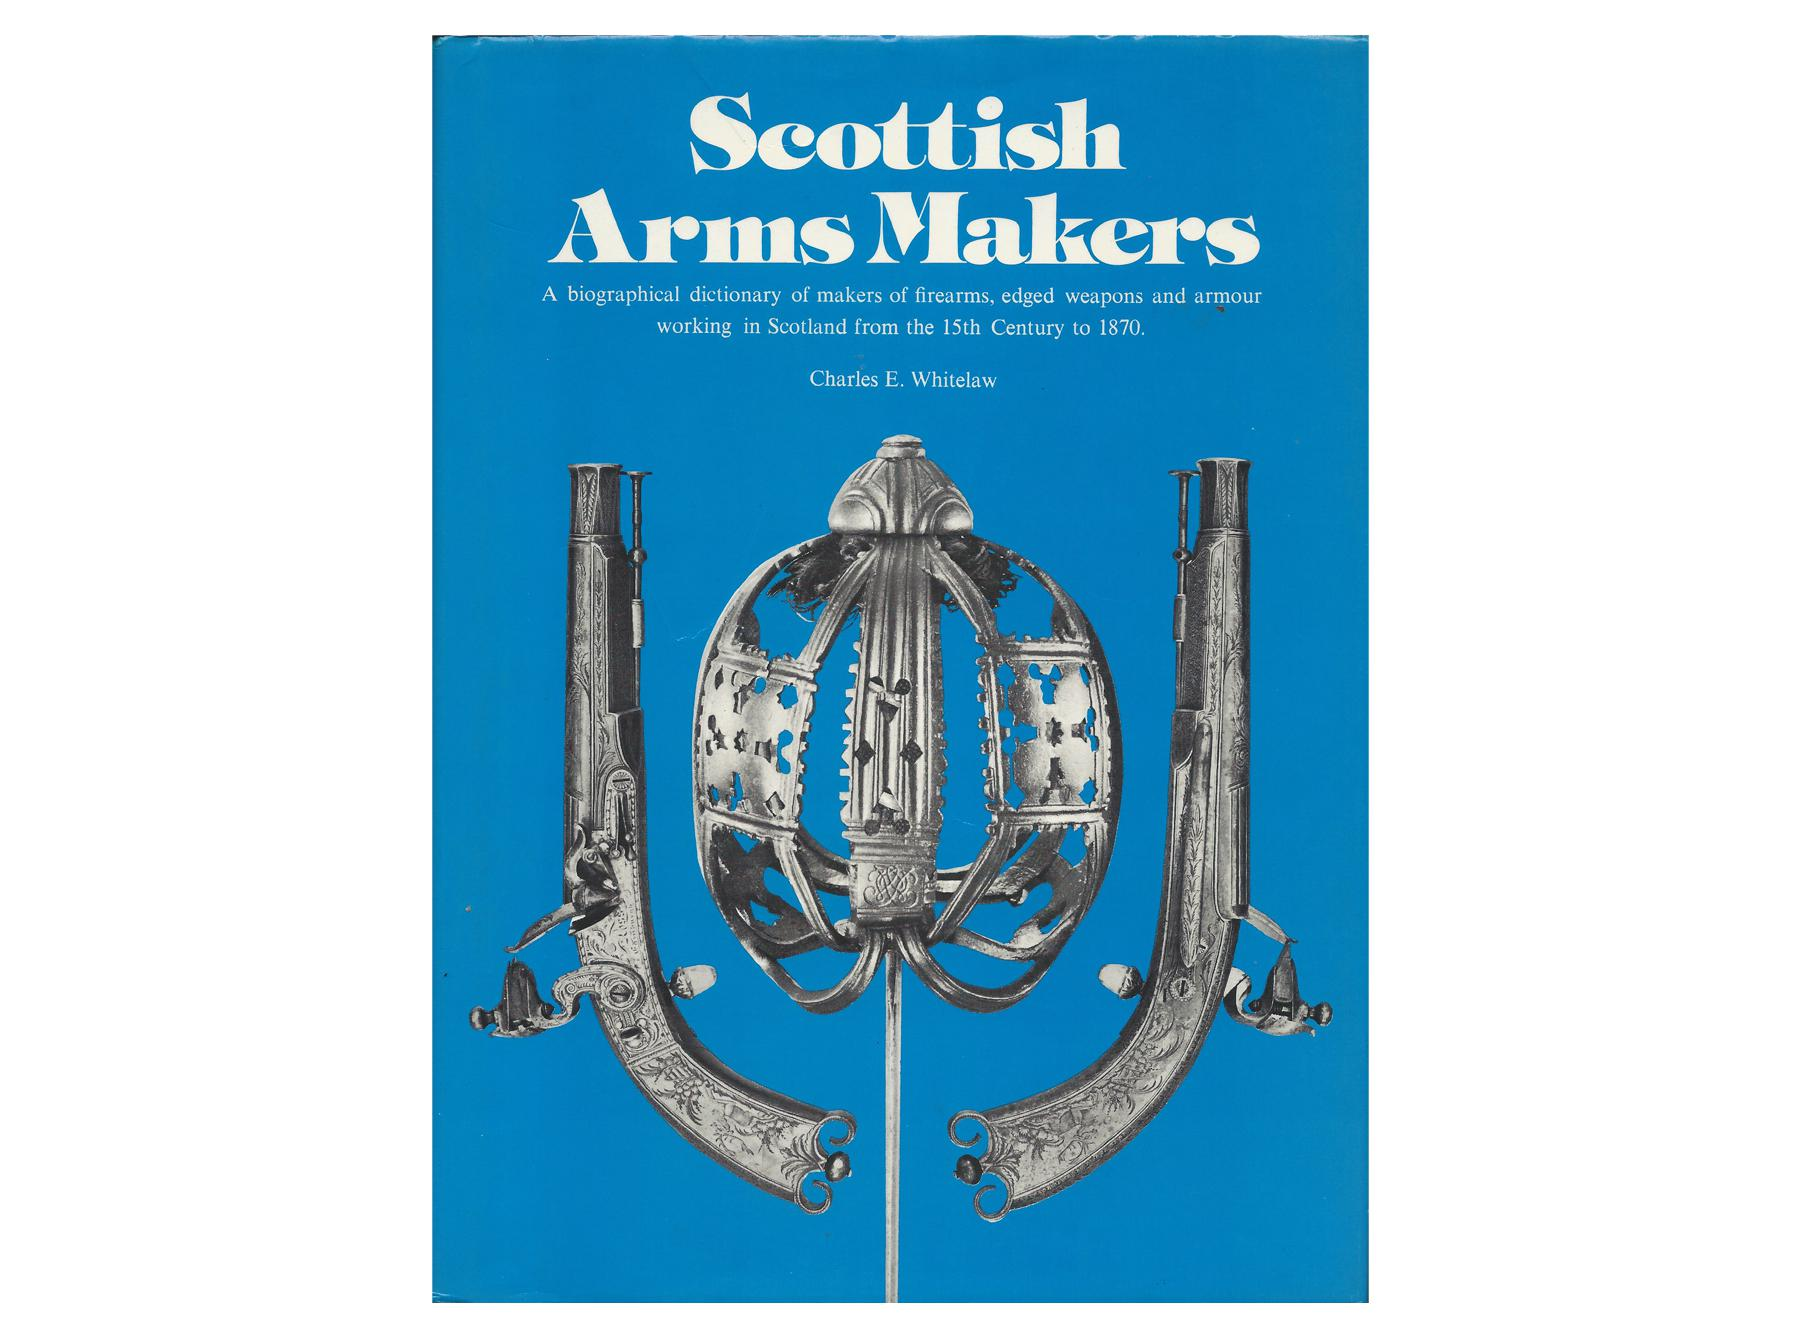 Scottish Arms Makers